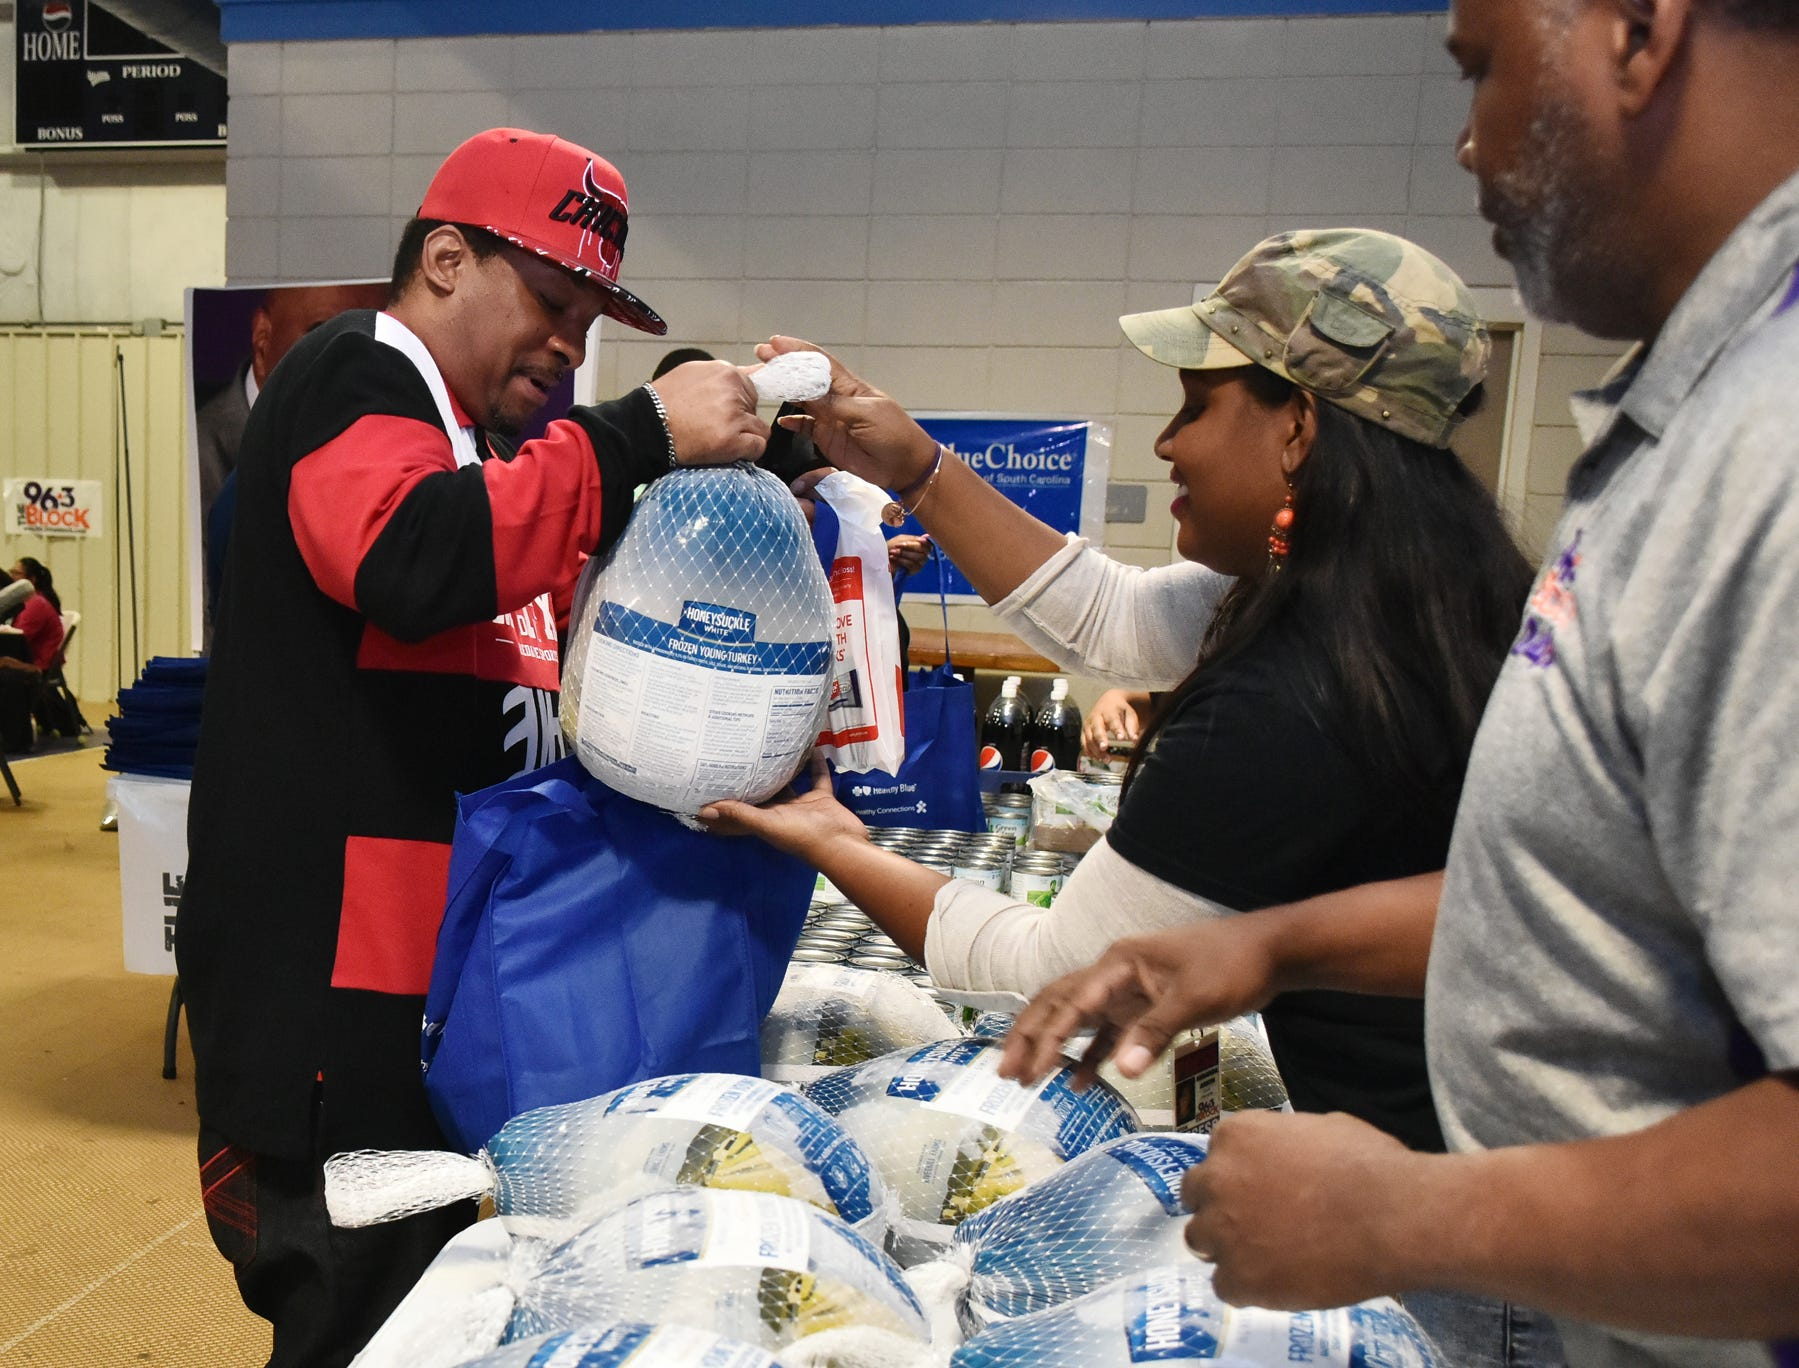 Miranda Asson, an on-air personality at The Block, 96.3 in Greenville, hands out turkeys during The Block presents The Steve Harvey Morning Show Turkey Give at the Freetown Community Center Tuesday evening, November 20, 2018.